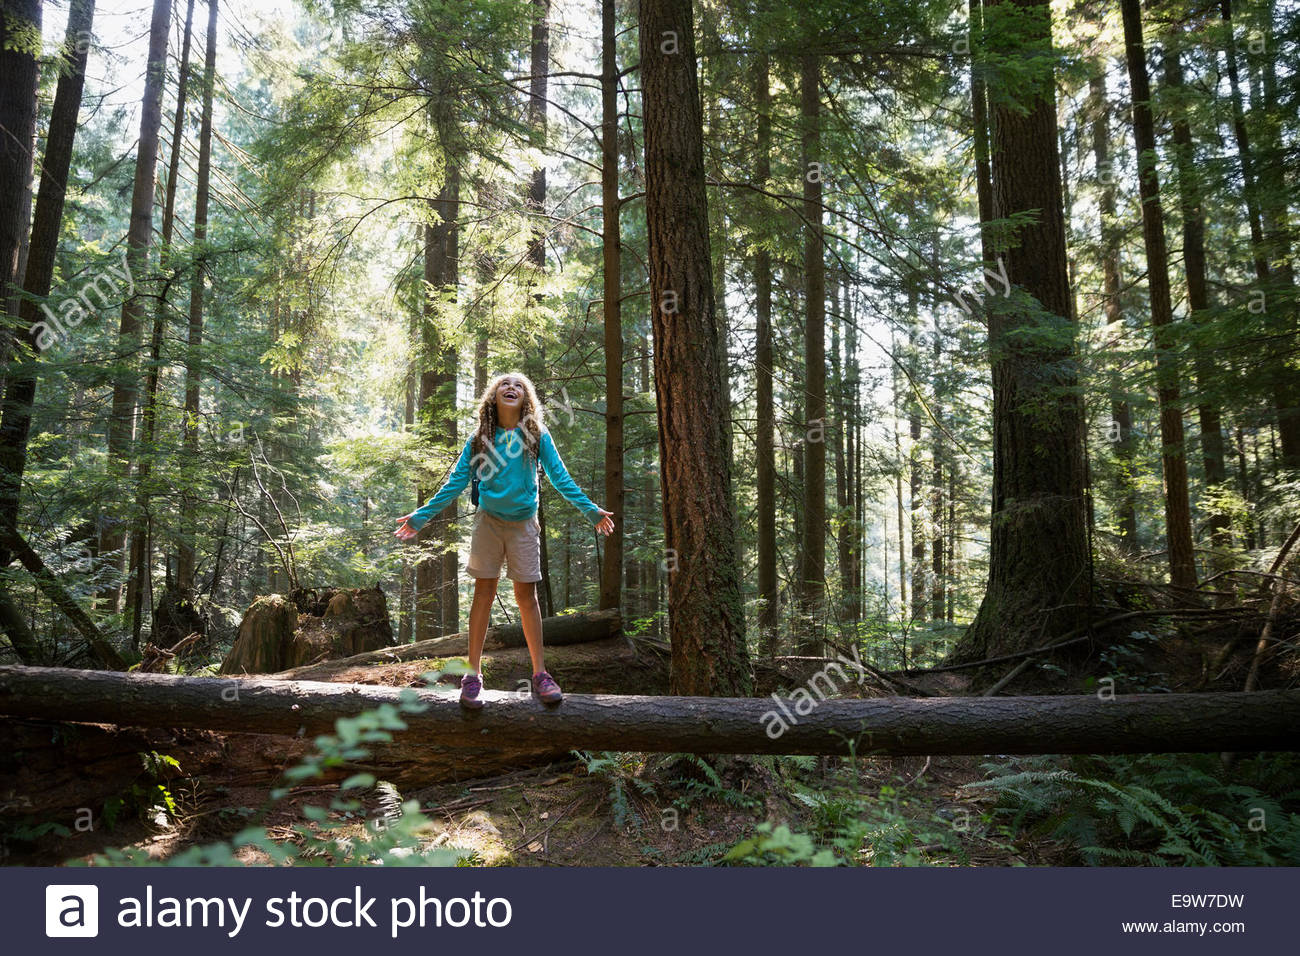 Girl with arms outstretched on tree in woods - Stock Image